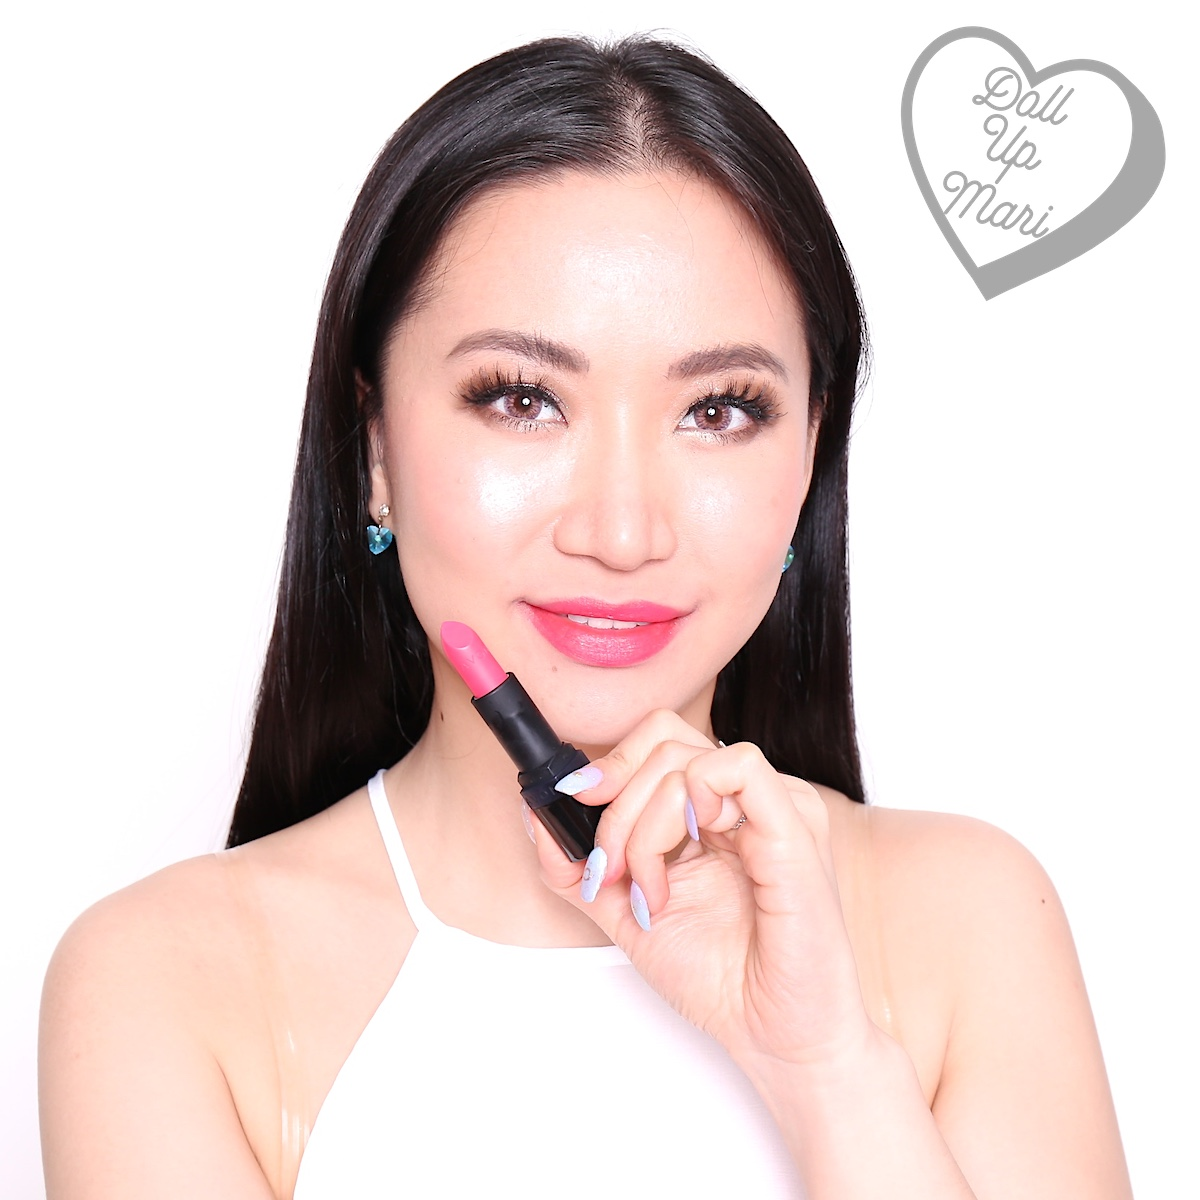 Mari wearing Vibrant Melon shade of AVON Perfectly Matte Lipstick